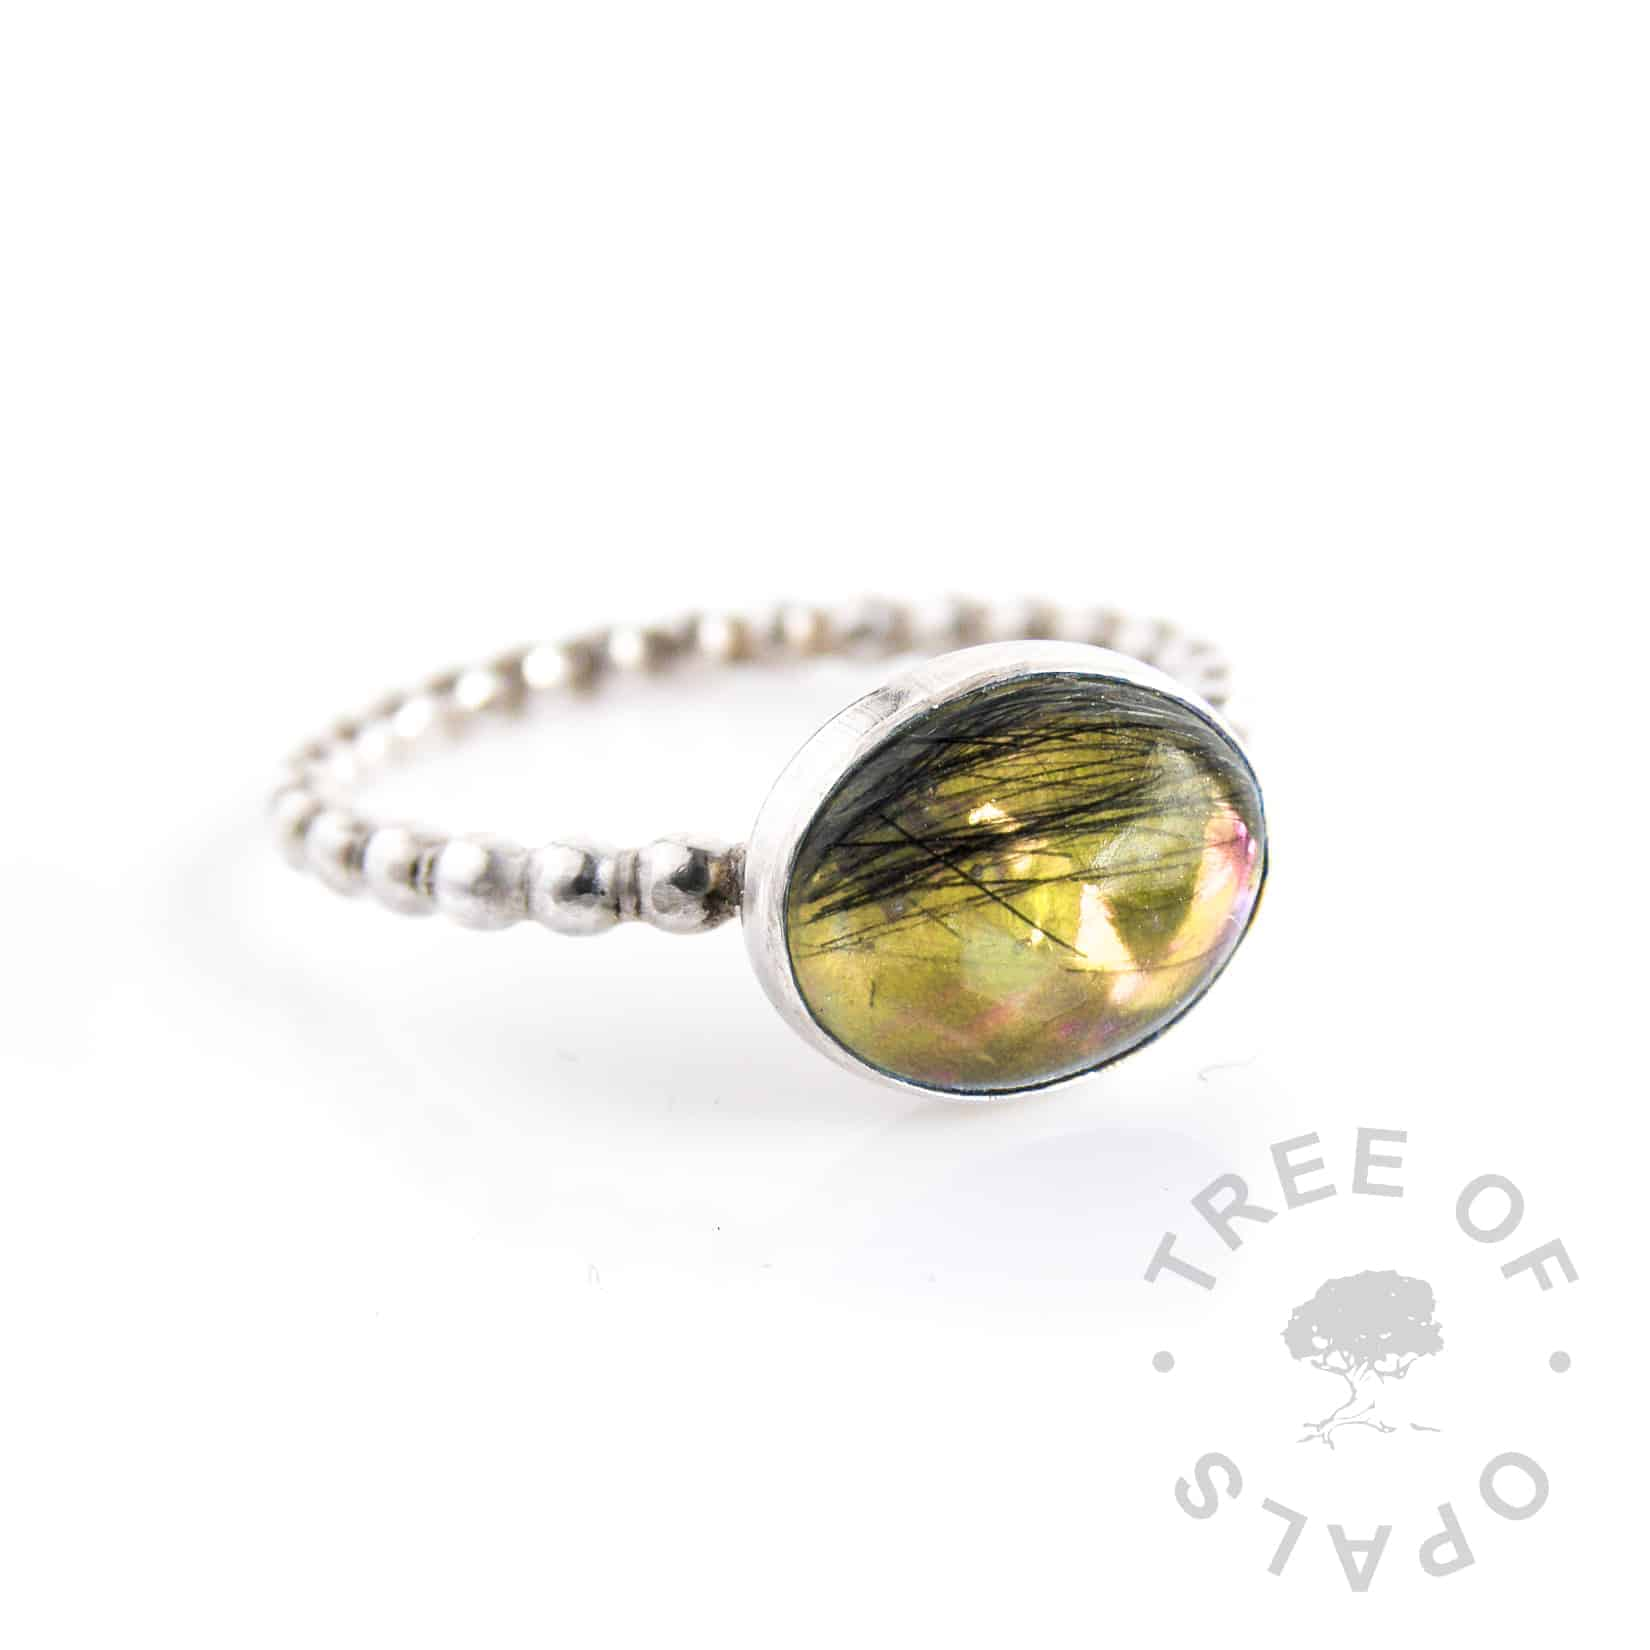 lock of hair ring with yellow opalescent flakes background on a bubble wire solid silver band and 10x8mm oval cabochon